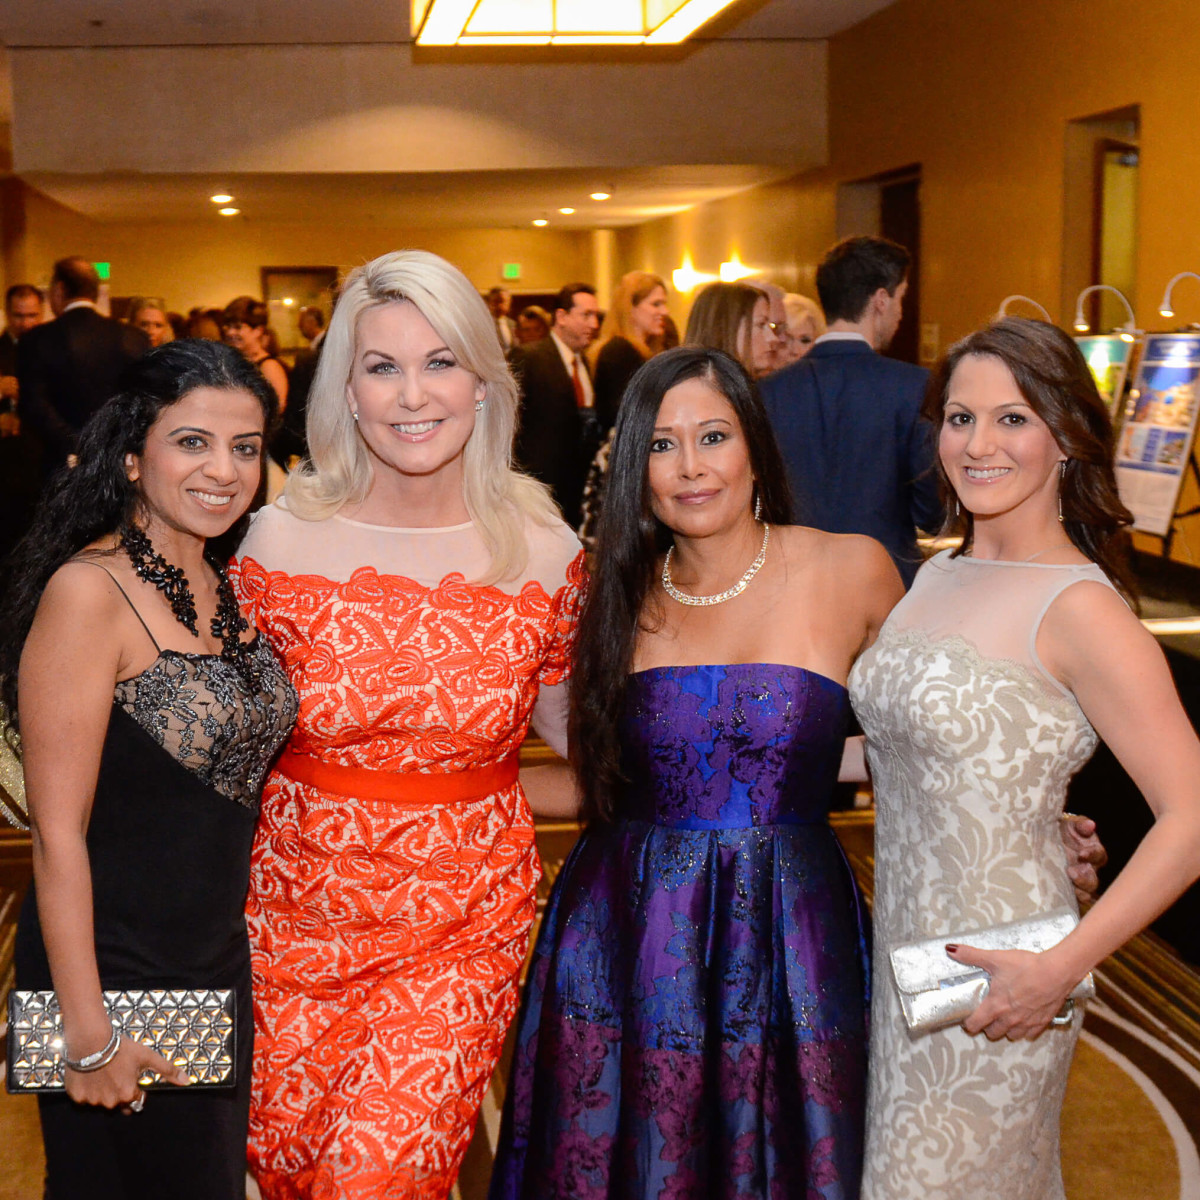 Houston, Crime Stoppers of Houston gala, Nov. 2016, Farida Abjani, Stephanie Von Stein, Melissa Rascon, Amanda Wilkinson